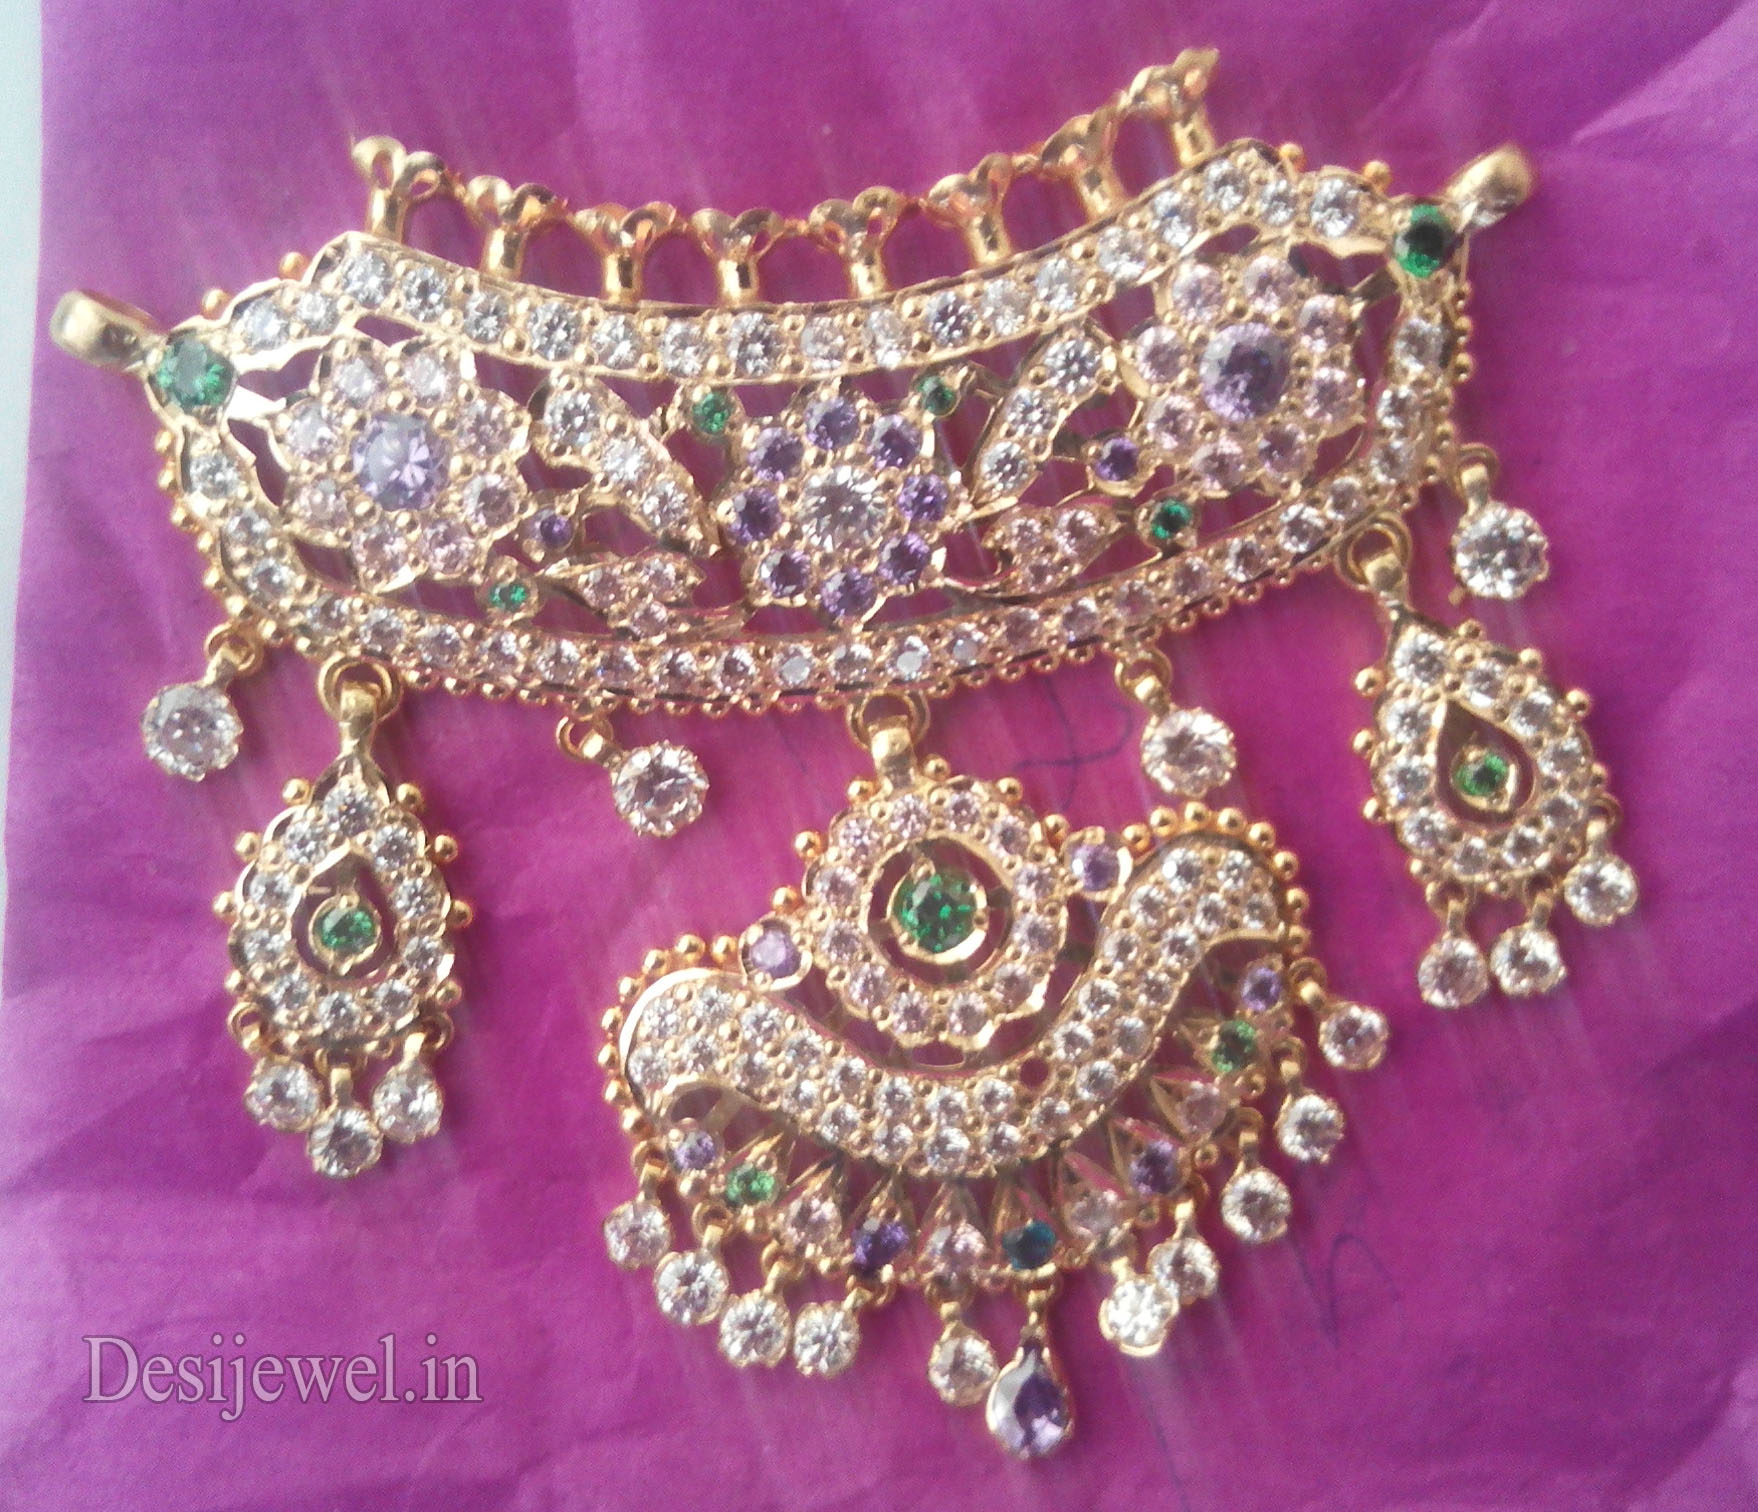 Rajasthani Gold Desi Mini Aad Jewellery  in Jodhpur with weight of 15-18 GM